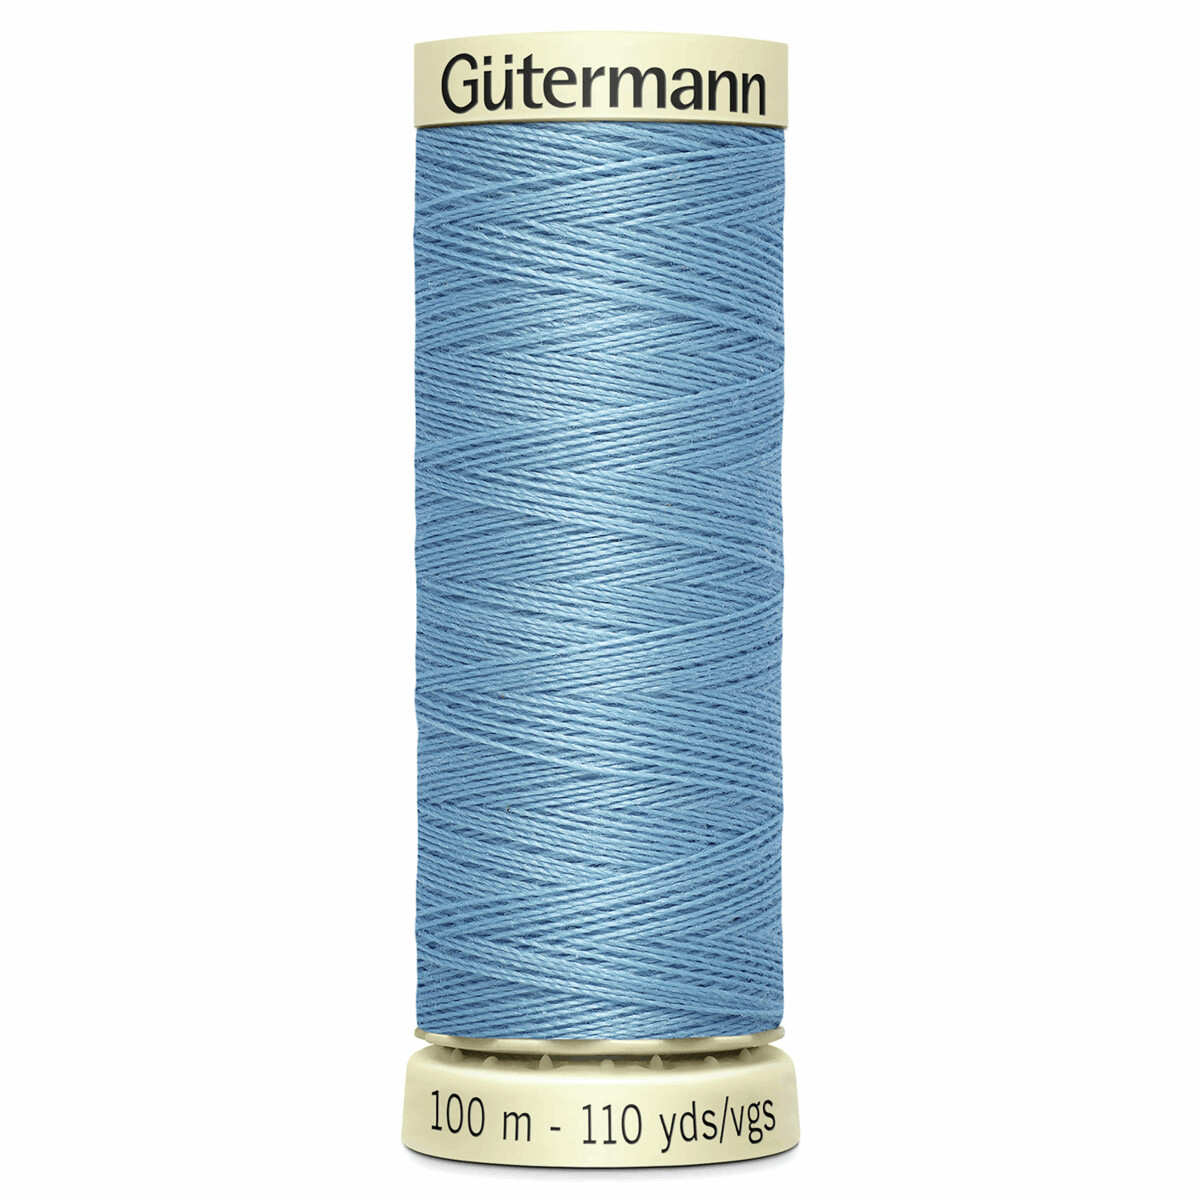 Gutermann Sew-All thread 143